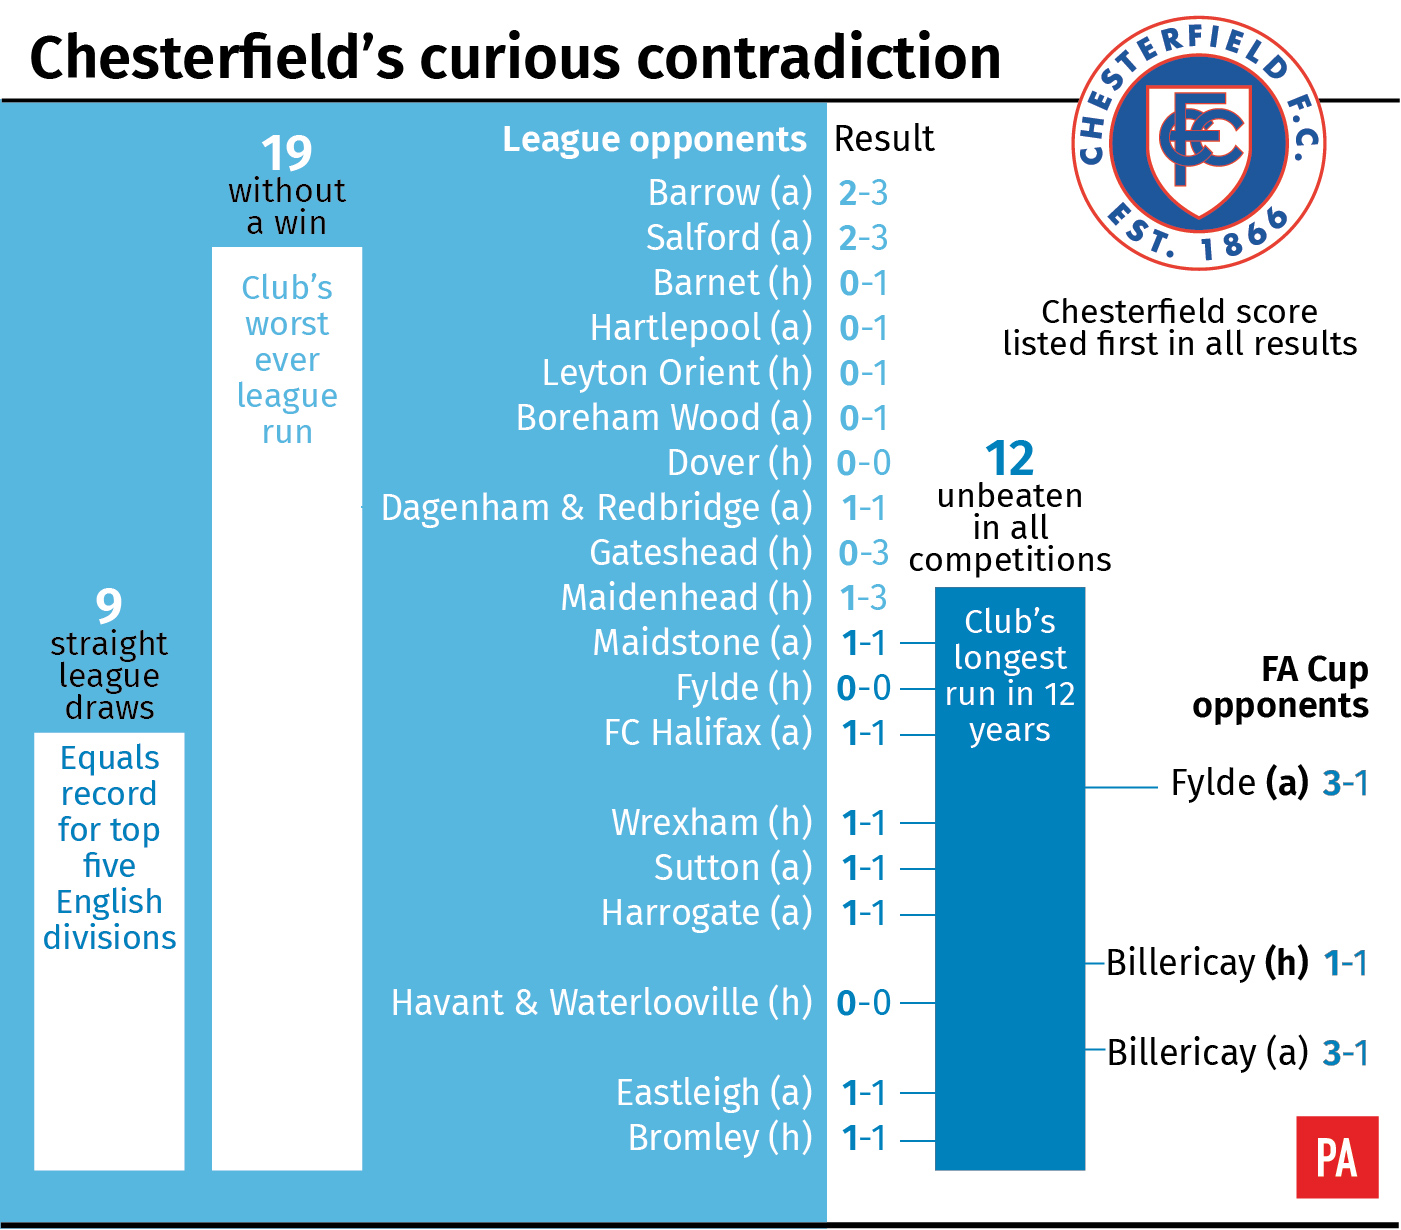 Chesterfield's run of form